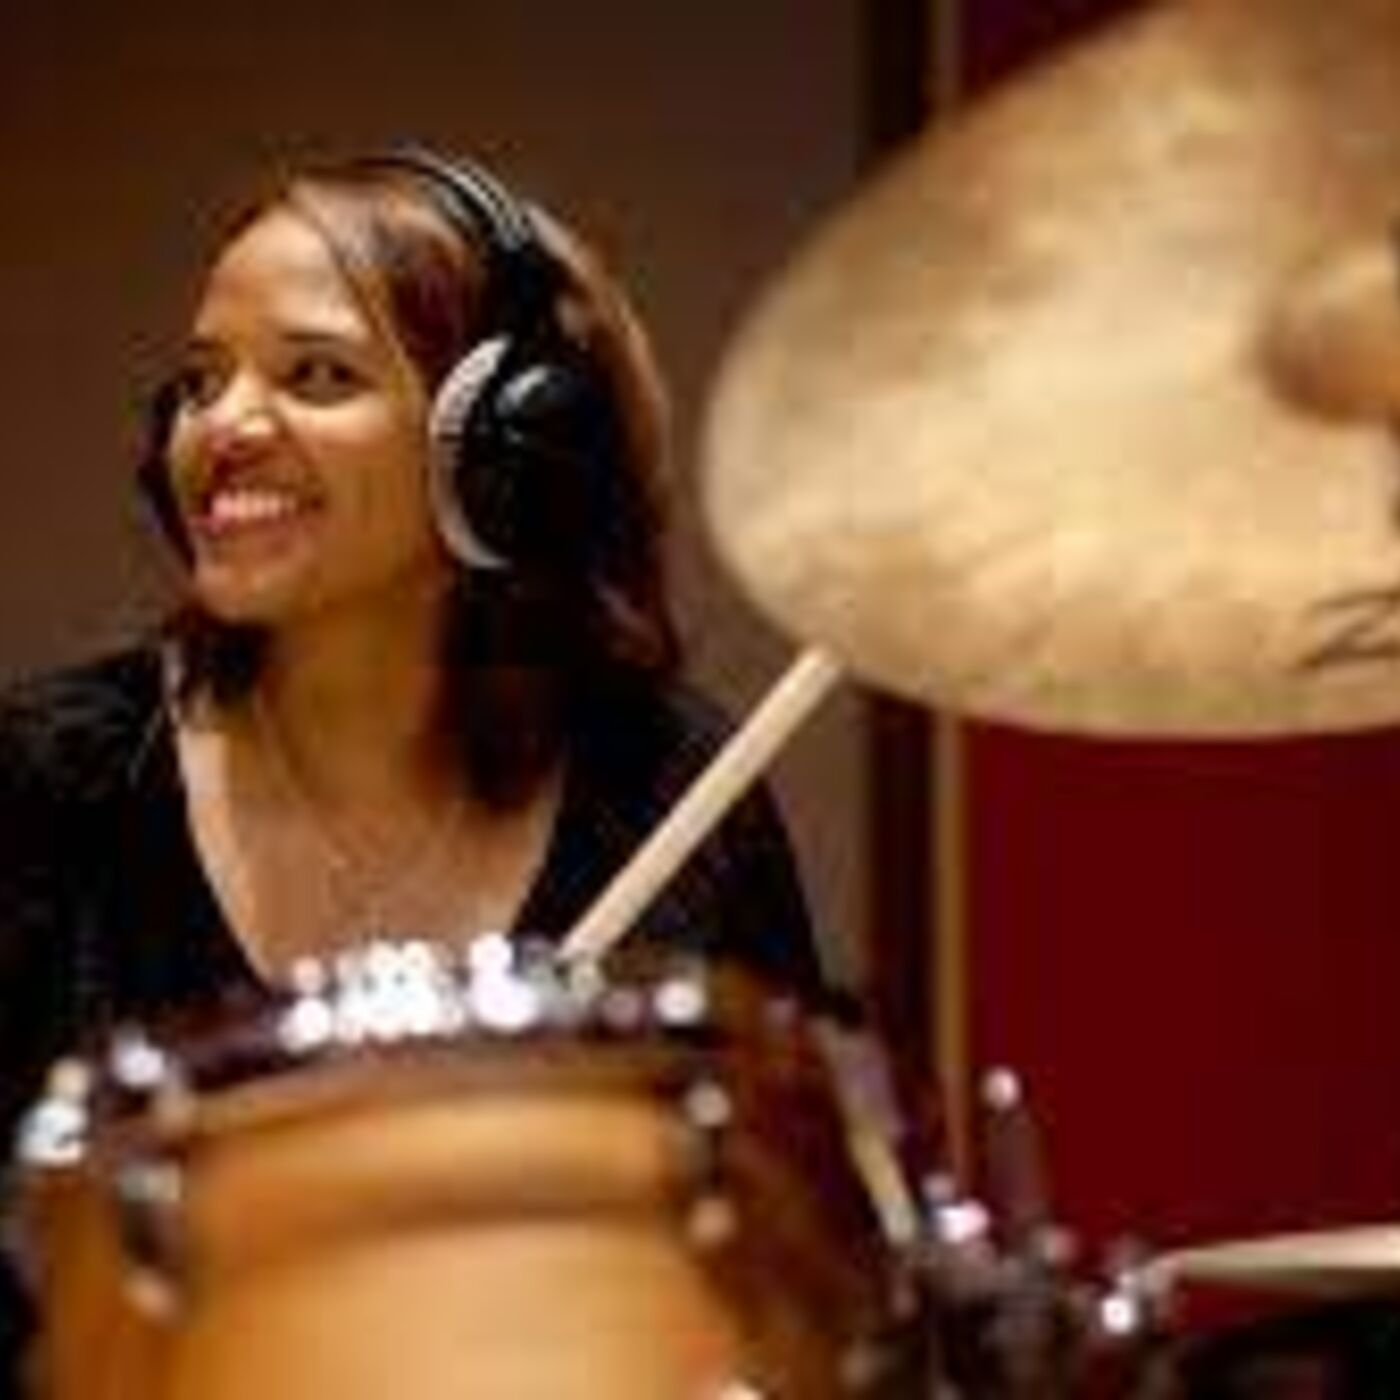 Episode 9 - A conversation with three-time Grammy Award winner, drummer Terri Lyne Carrington, and her work with the Institute of Jazz and Gender Justice.